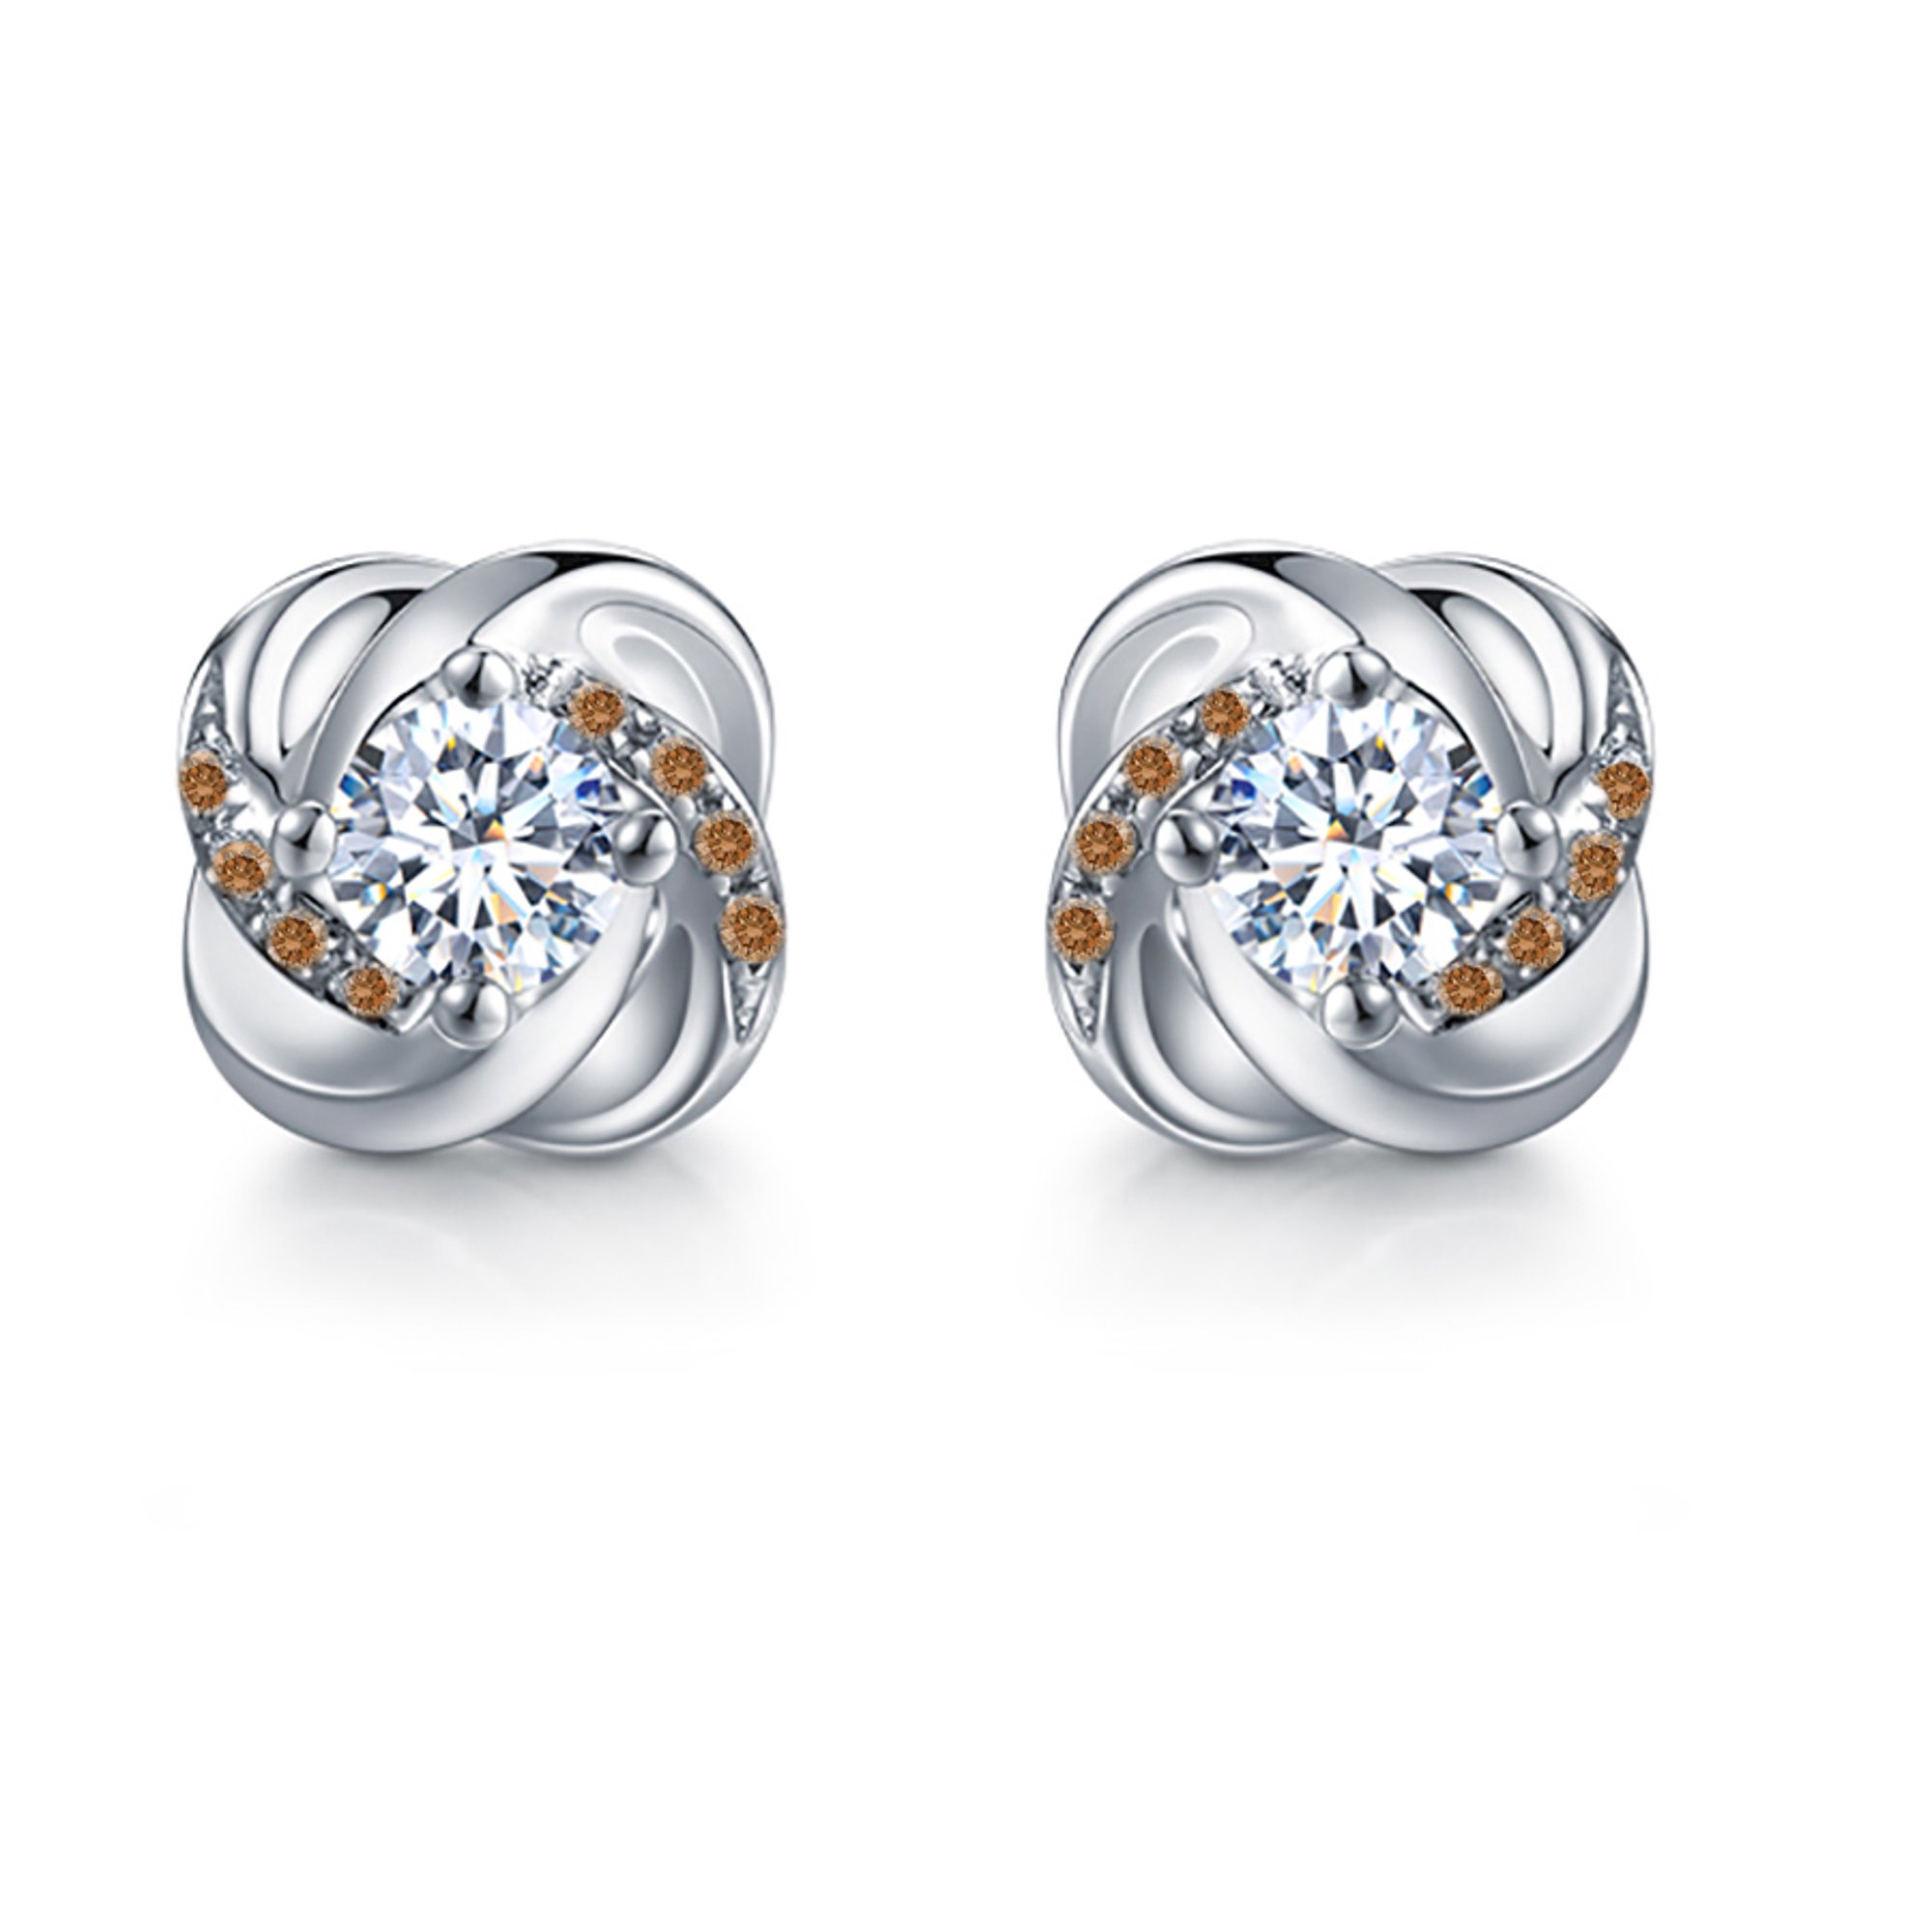 50 Carat Round Brilliant White And Brown Diamond Knot Stud Earrings In 10k White Gold Walmart Canada